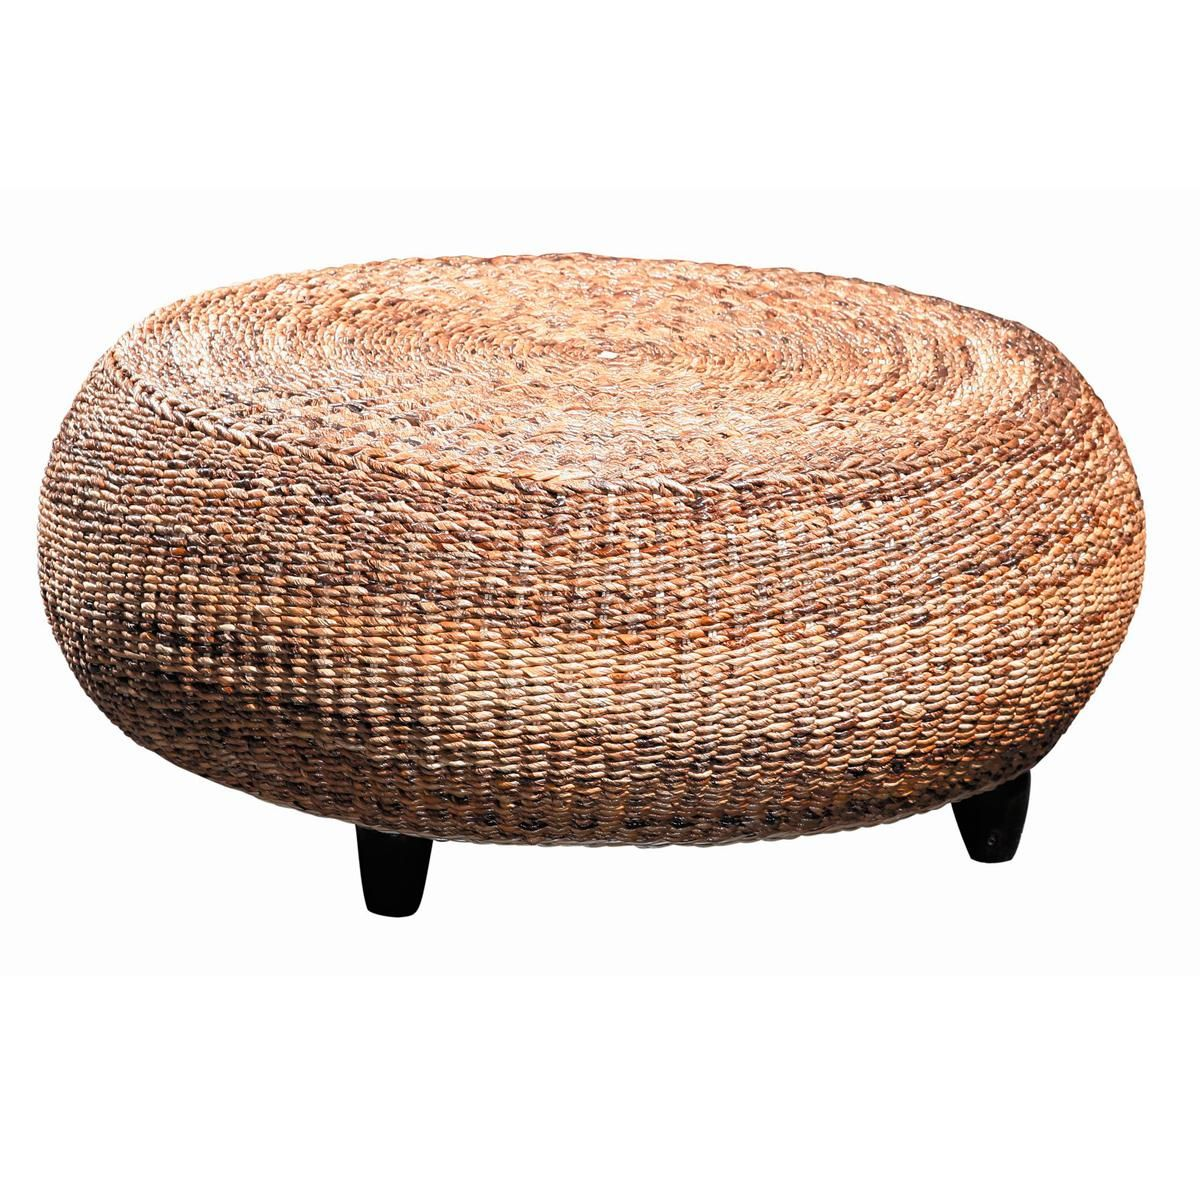 round seagrass ottoman something like this for family room coffee table cheryl 39 s residence. Black Bedroom Furniture Sets. Home Design Ideas